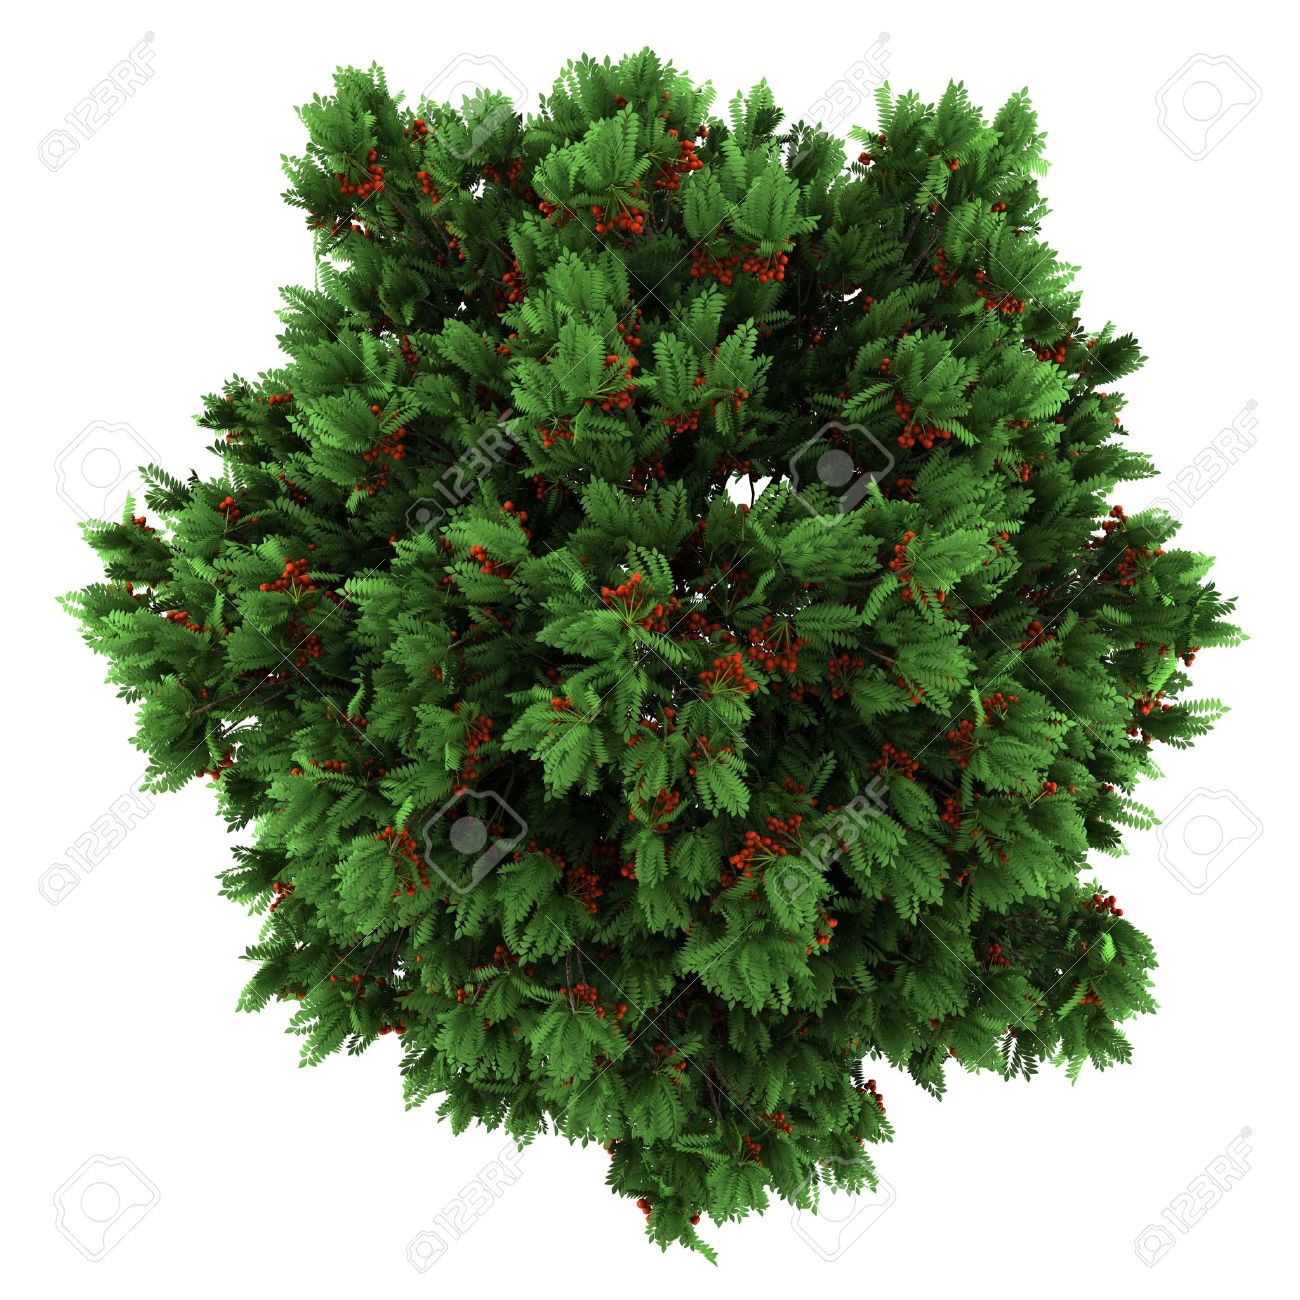 Tree PNG Top View Transparent Tree Top View.PNG Images.